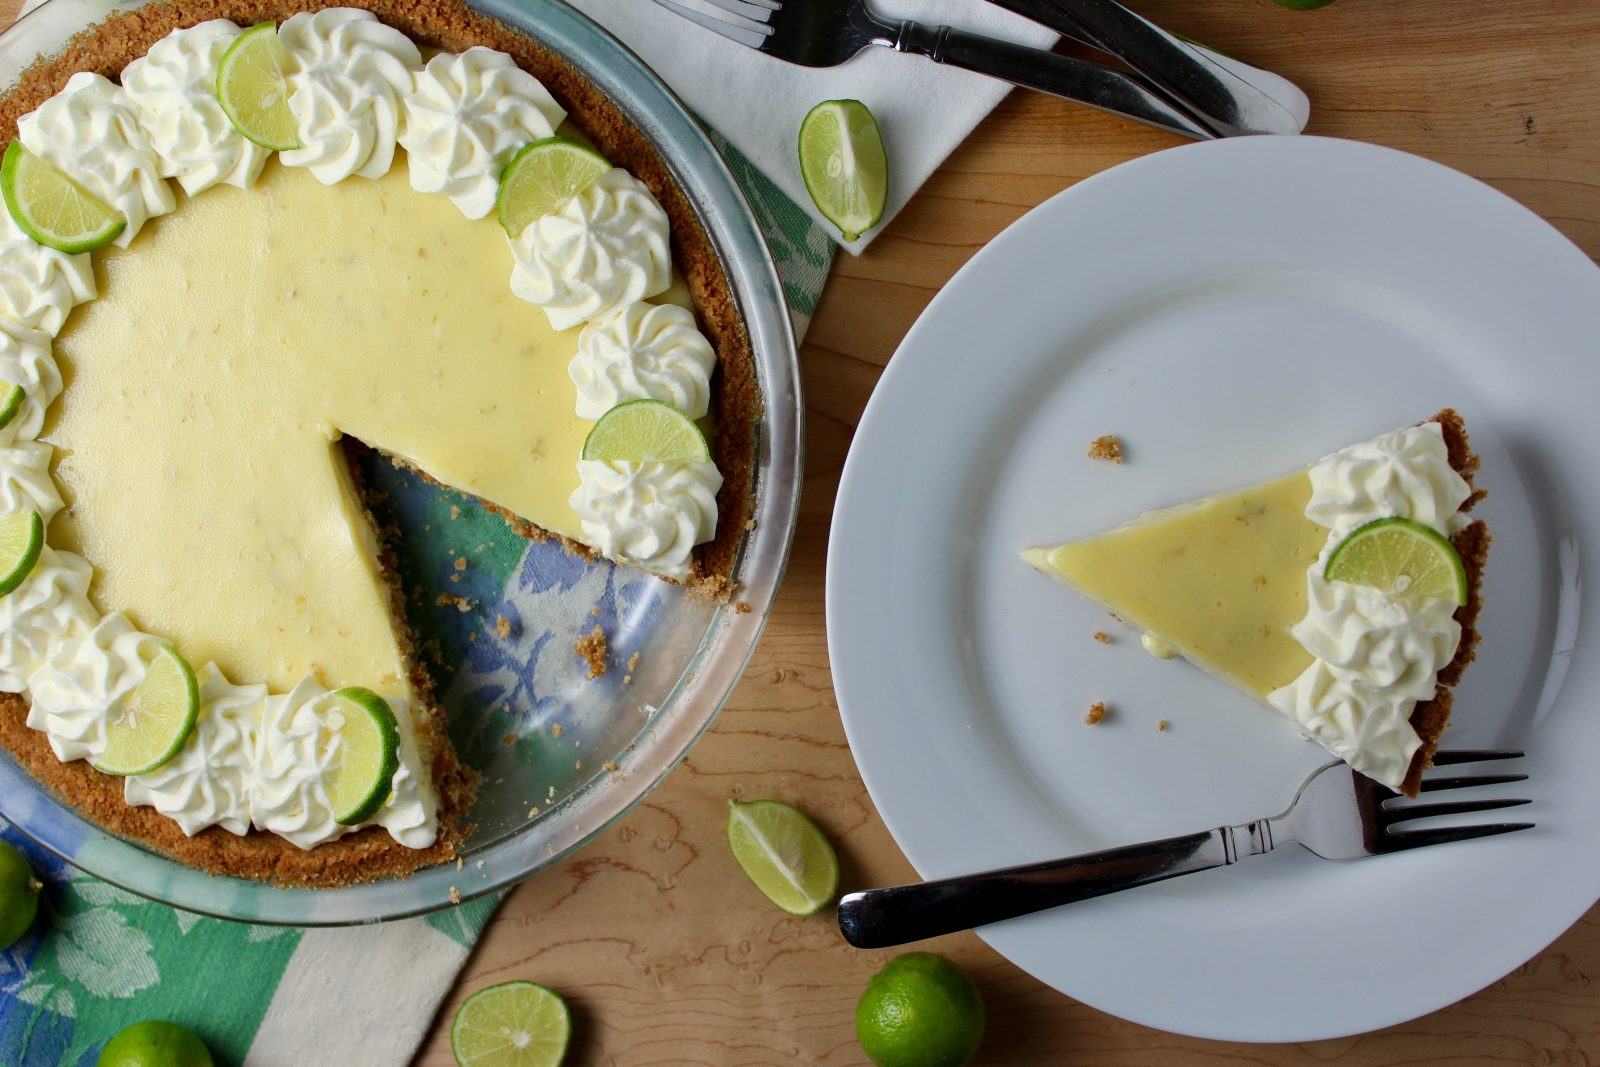 Key Lime Pie with slice on plate.  Decorated with whipped cream rosettes and key lime slices